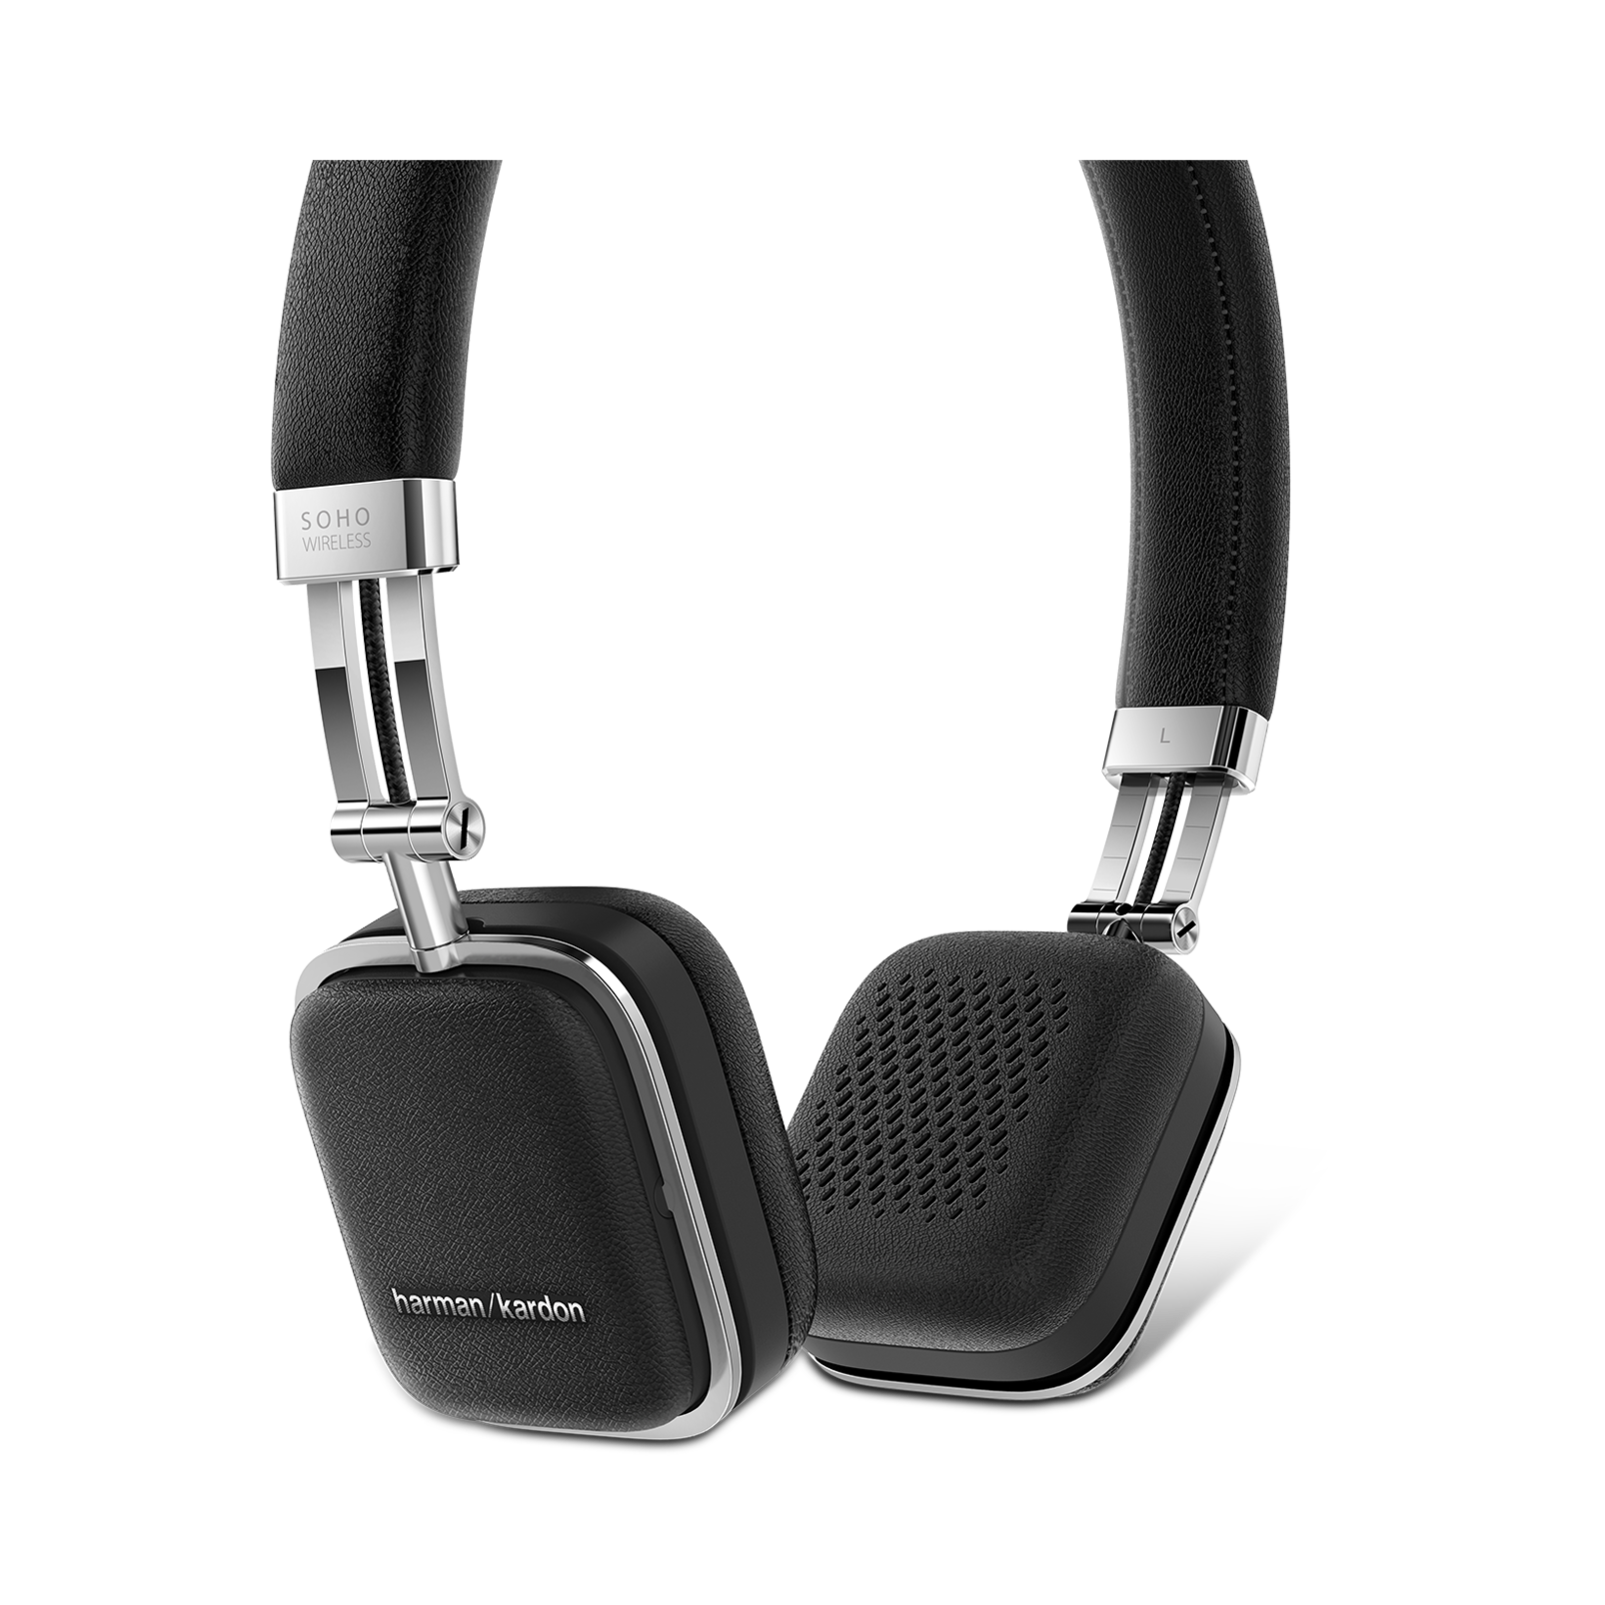 Soho Wireless - Black - Premium, on-ear headset with simplified Bluetooth® connectivity. - Detailshot 1